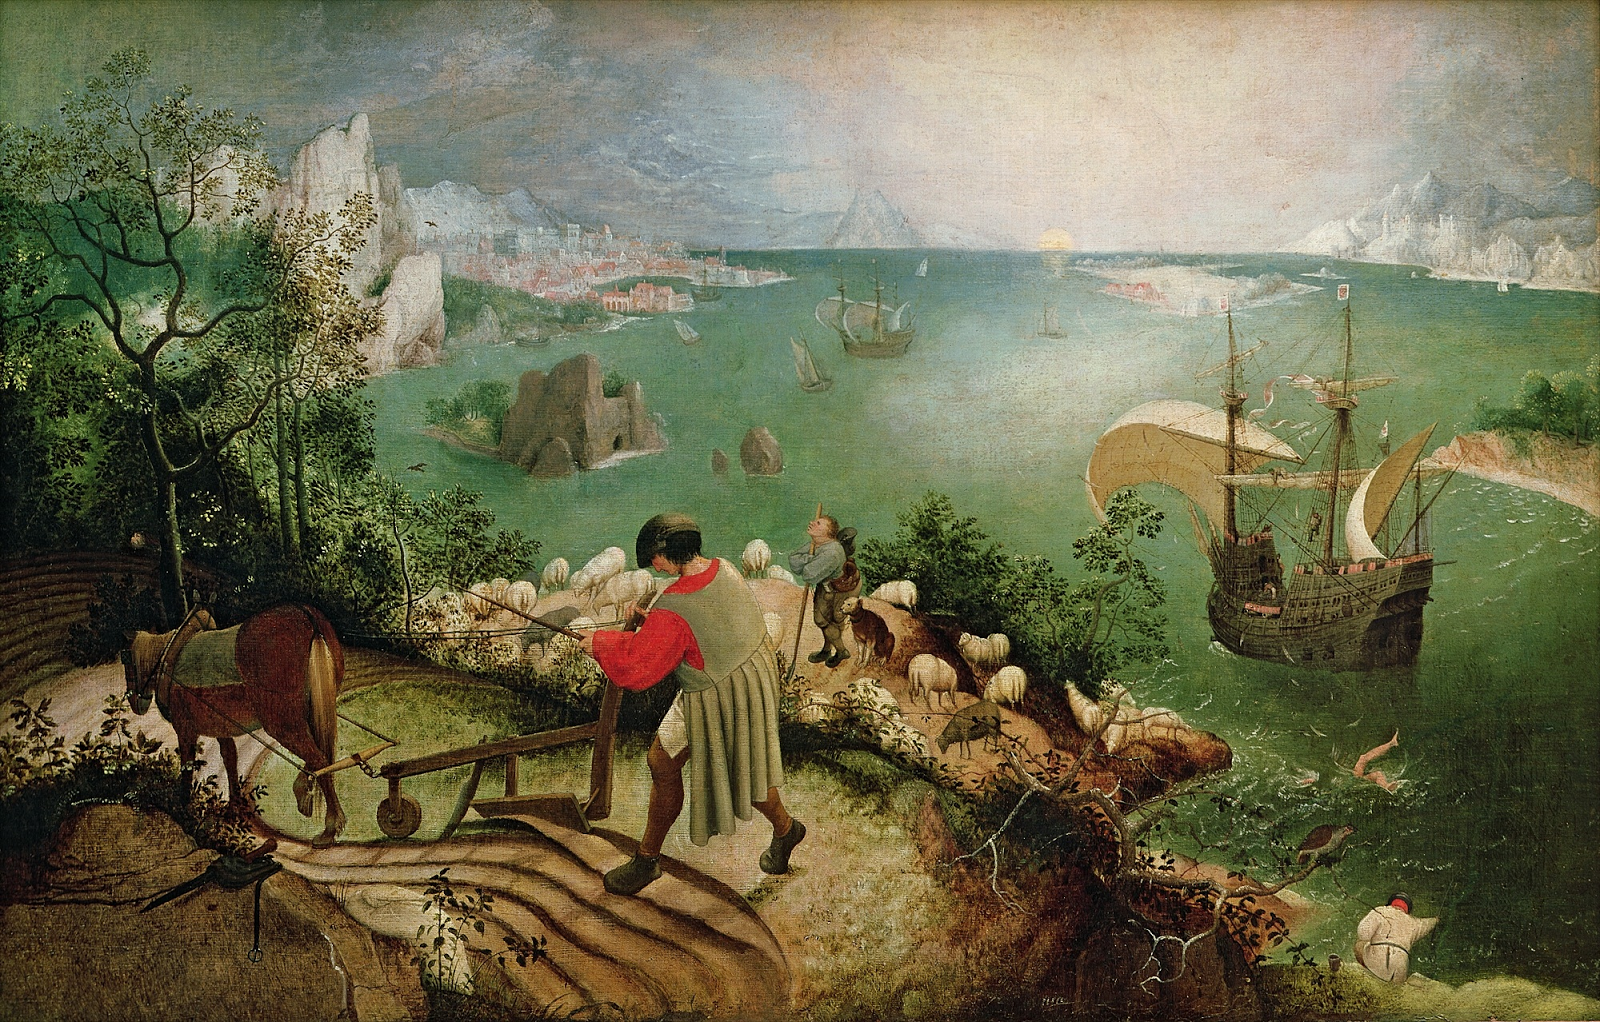 Landscape with the Fall of Icarus long thought to be by Pieter Bruegel.